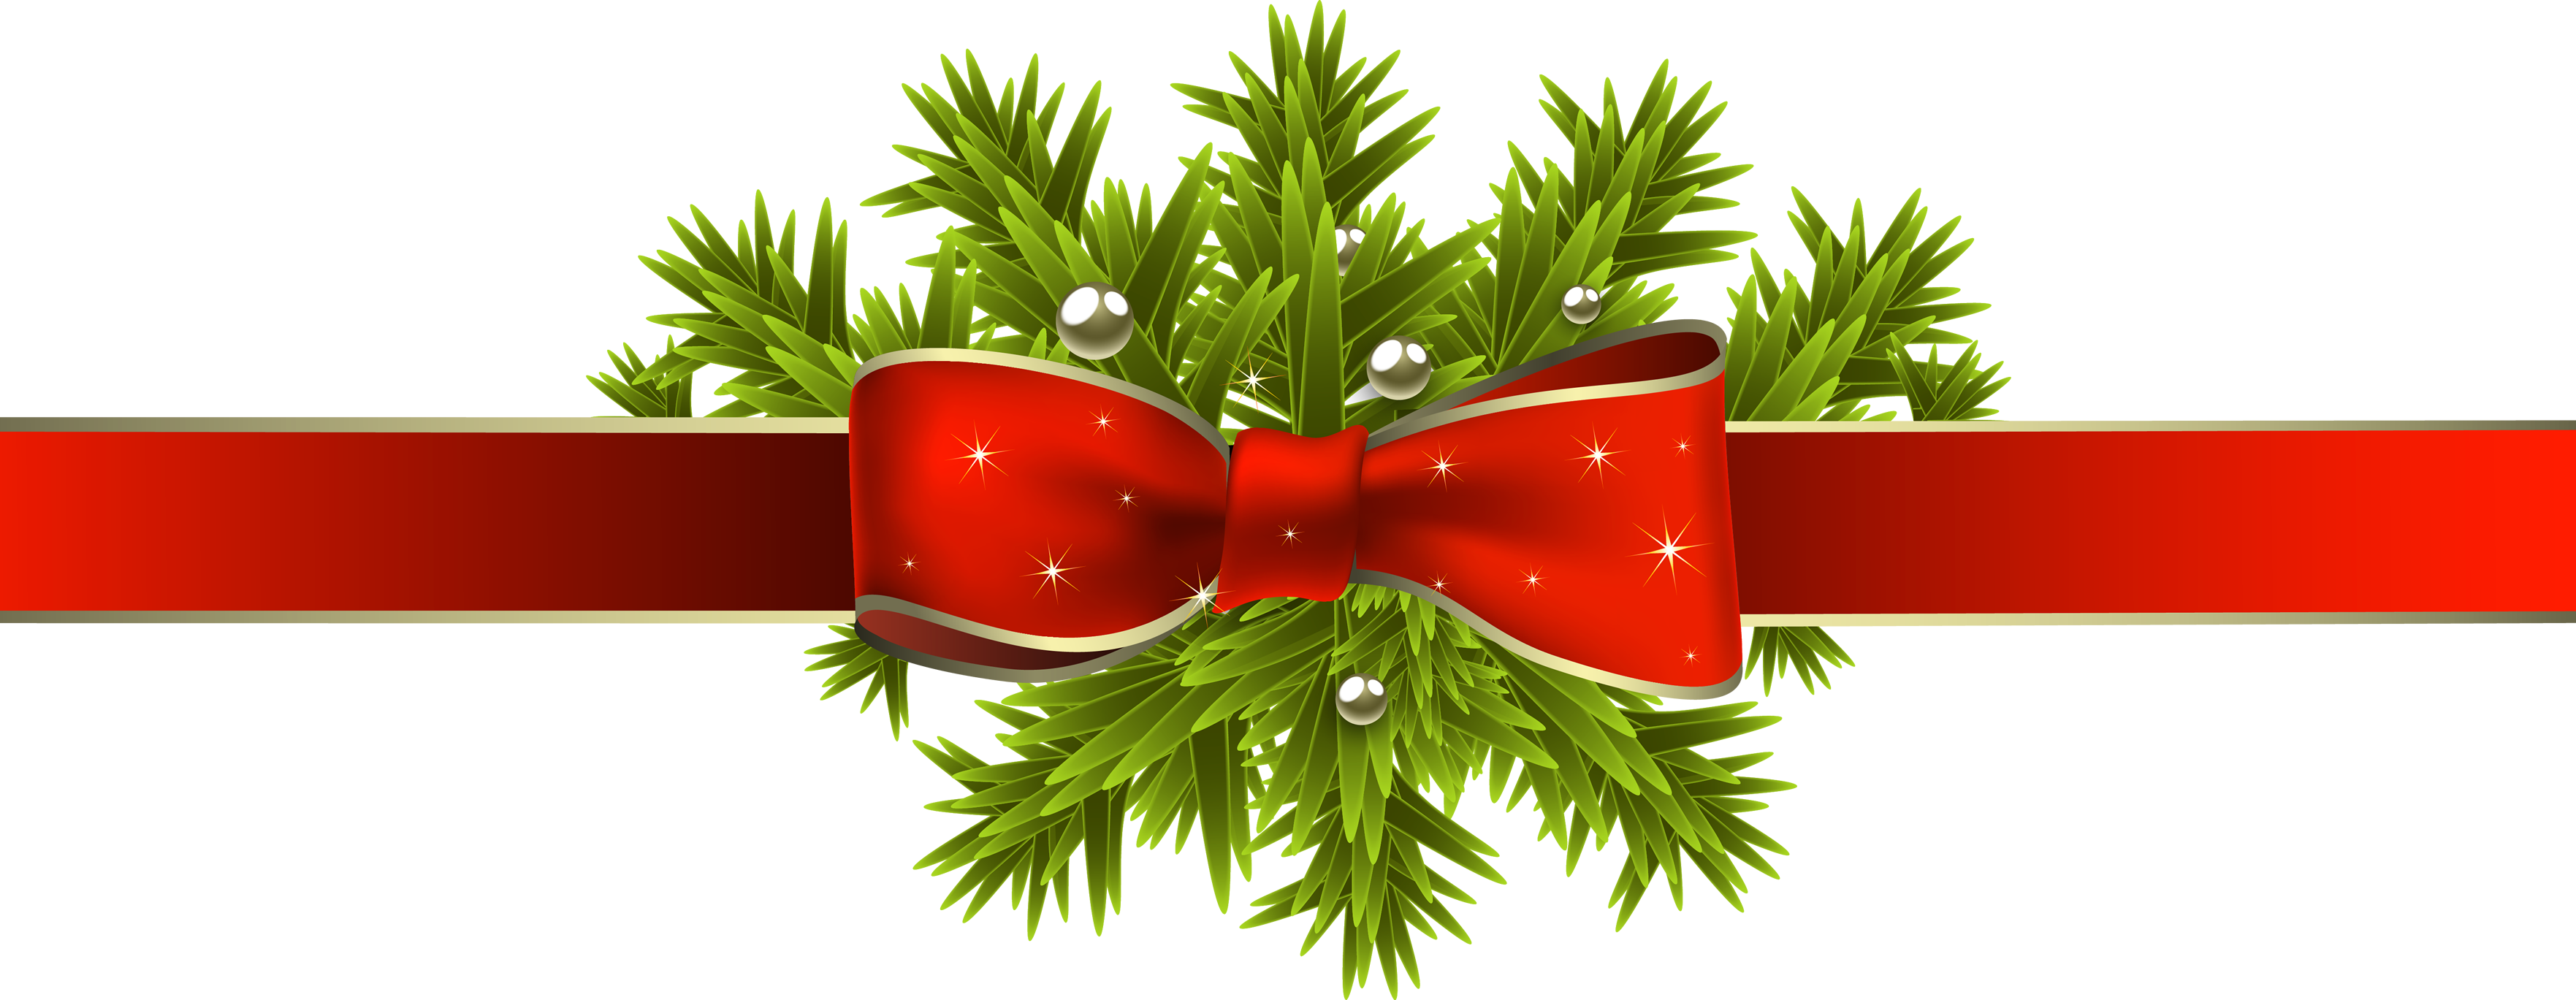 Leaf, Ribbon, Christmas, Red Png image #47079